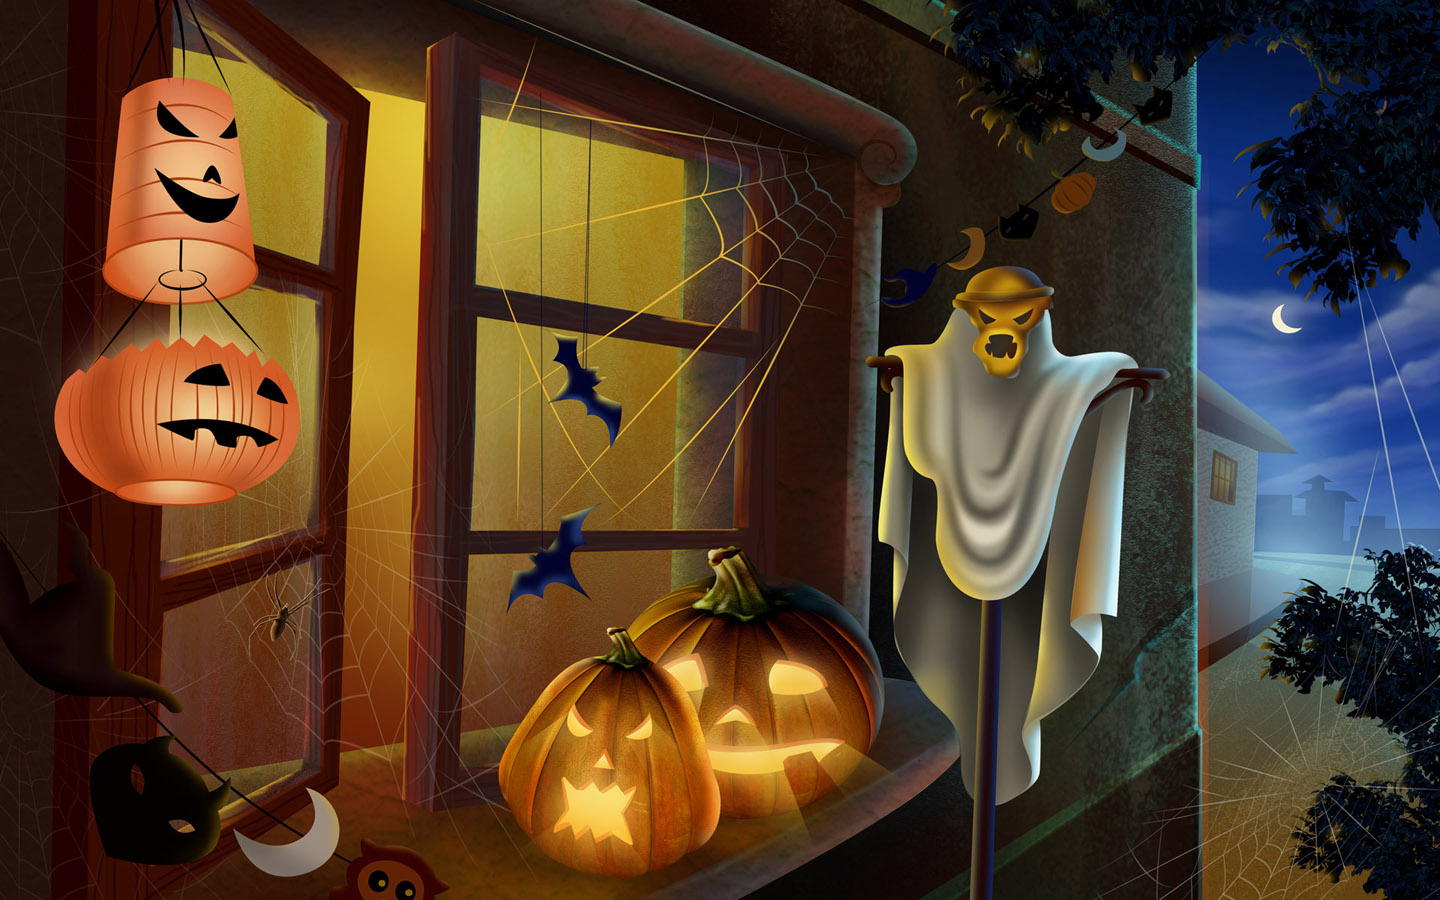 Cool Halloween wallpaper 1440x900